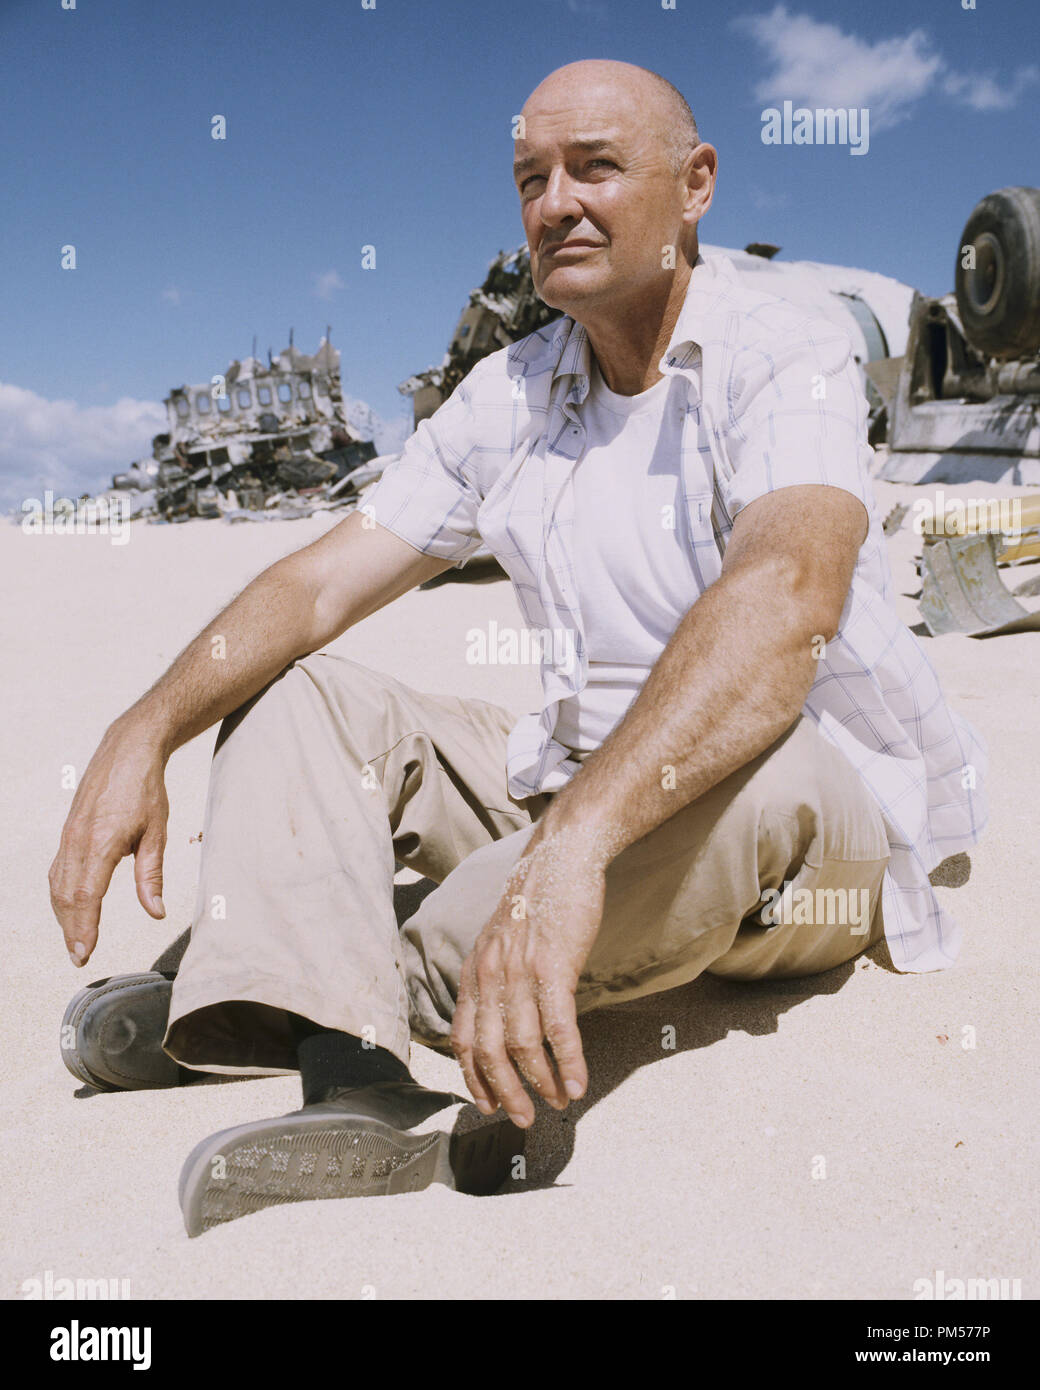 Studio Publicity Still from 'Lost' Terry O'Quinn 2004   File Reference # 307351591THA  For Editorial Use Only -  All Rights Reserved - Stock Image